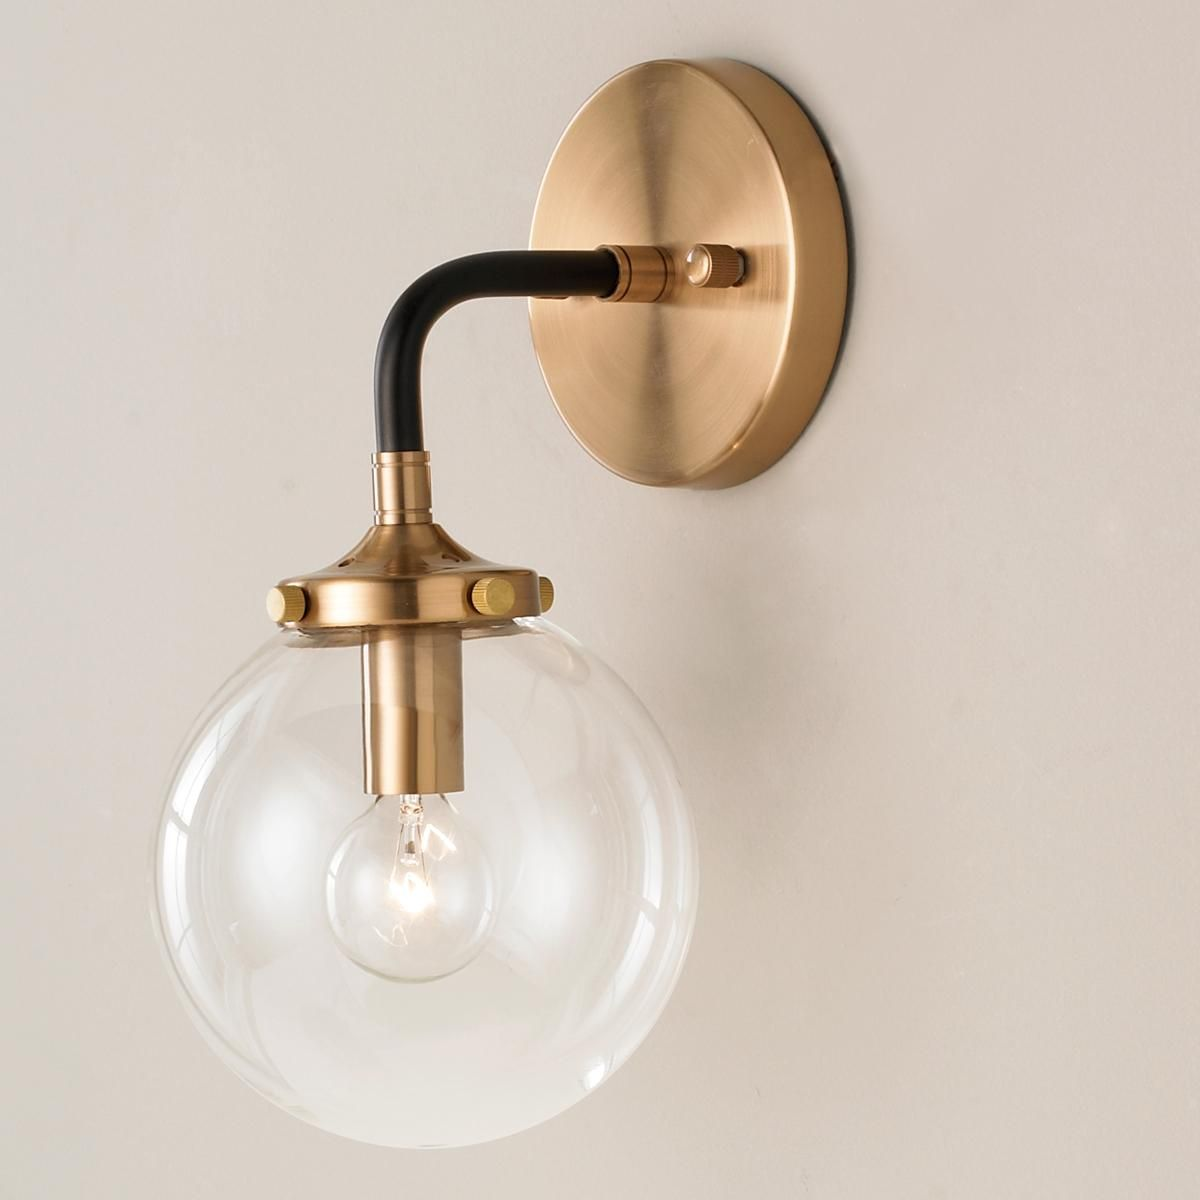 Mixed Metal Globe Sconce Globe Sconce Modern Sconces Mid Century Modern Lighting